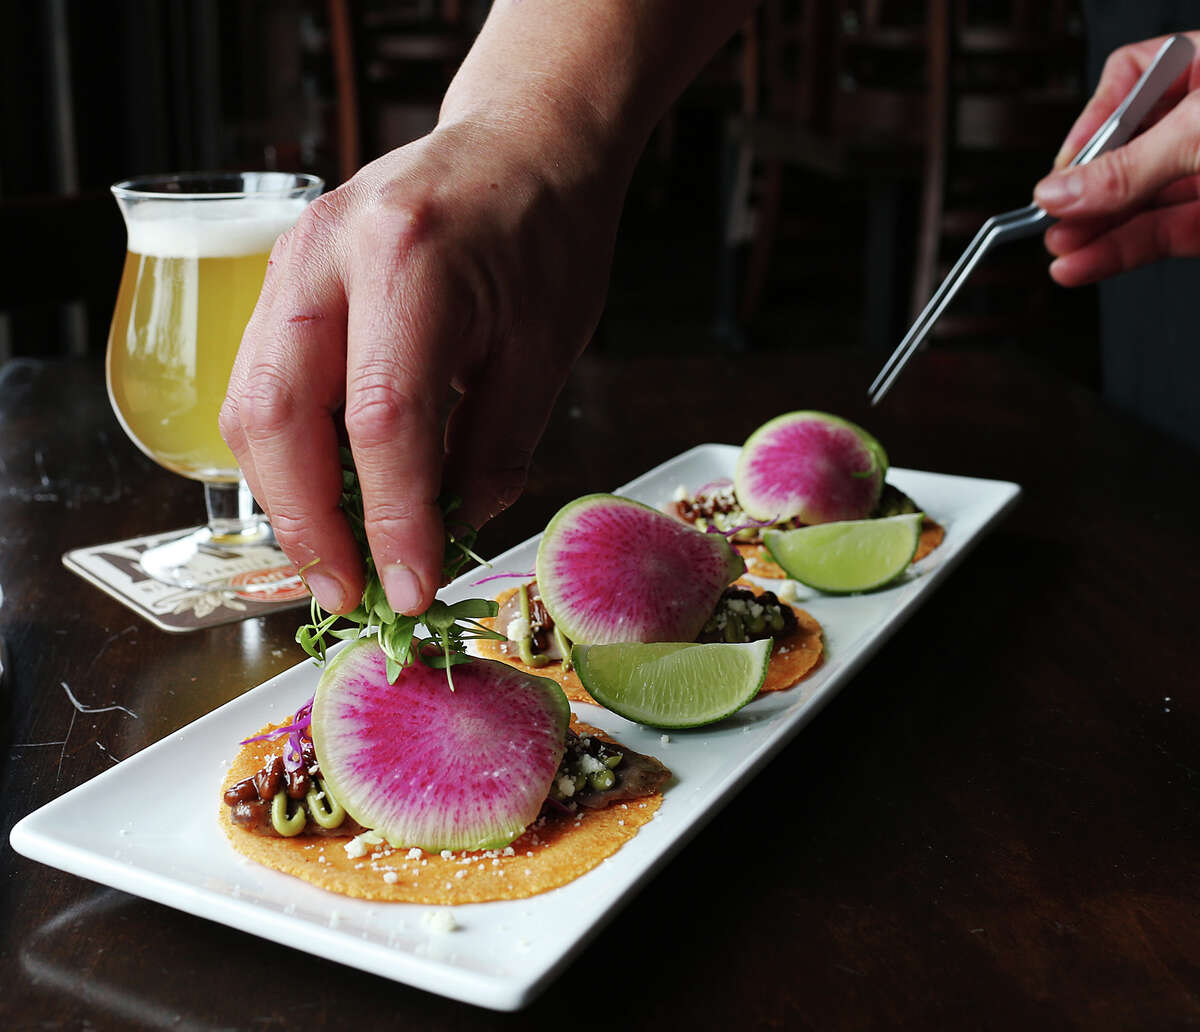 The duck breast carnitas tacos are served on Gochujang tortillas topped with avocado puree, salsa roja, red cabbage, watermelon radish, cotija cheese and micro cilantro at The Hoppy Monk, Tuesday, Feb. 3, 2015. The establishment is located off Loop 1604 in the Stone Oak area.